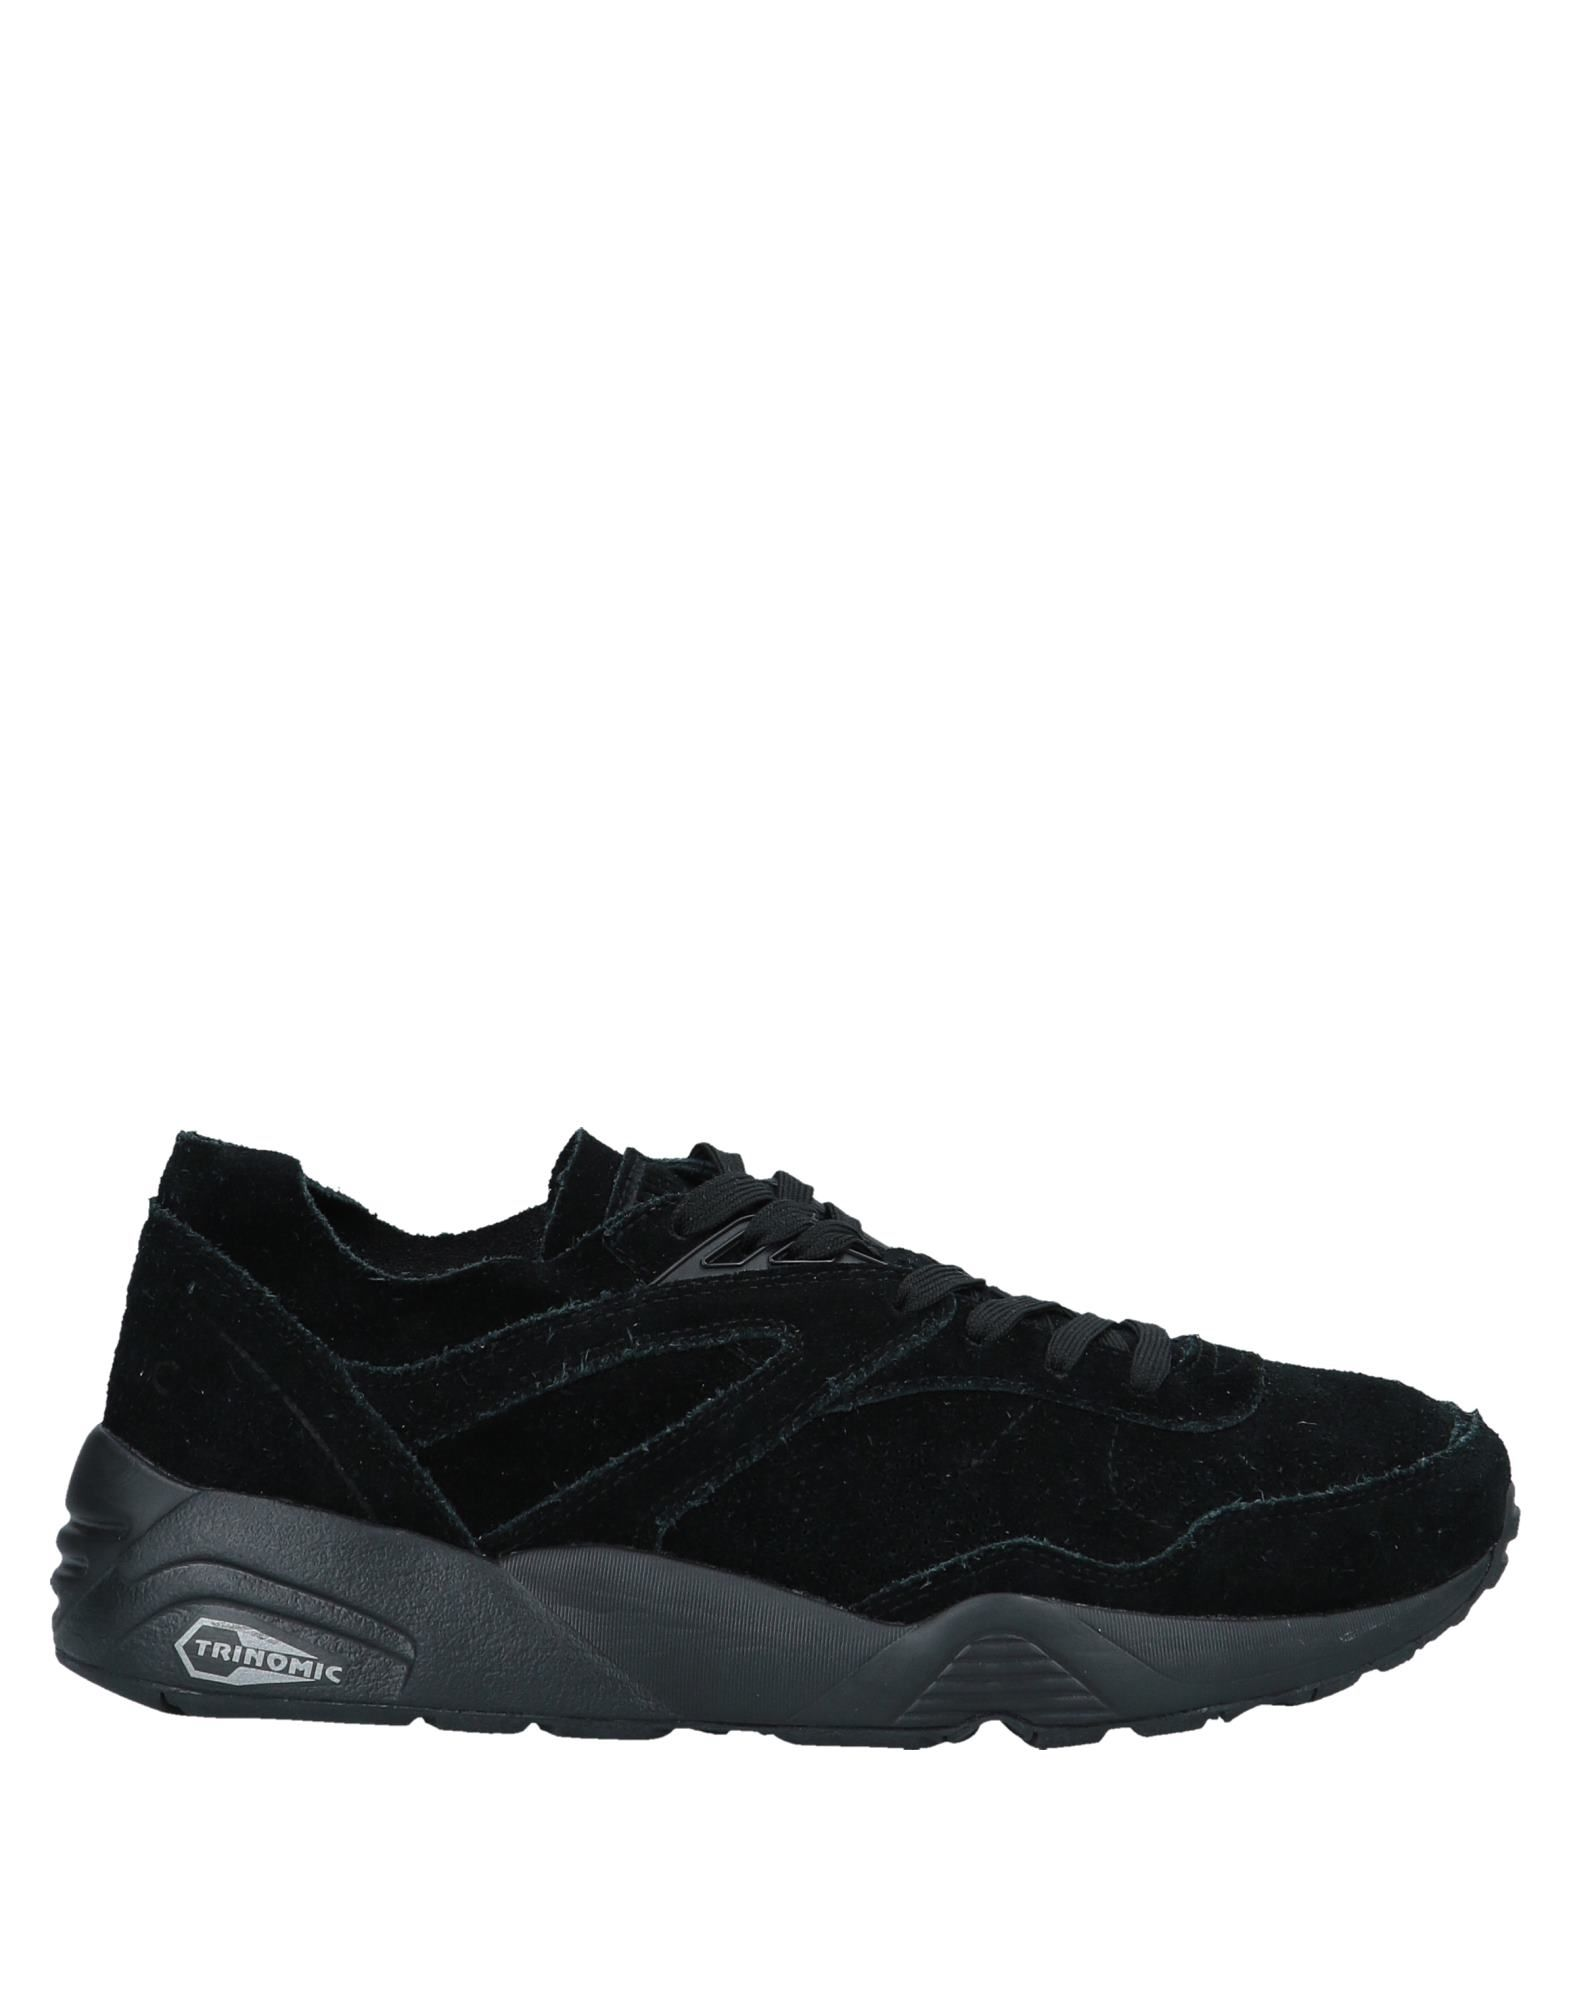 Puma Sneakers - Men Puma Sneakers Sneakers Sneakers online on  United Kingdom - 11578920MD 0d1fc1